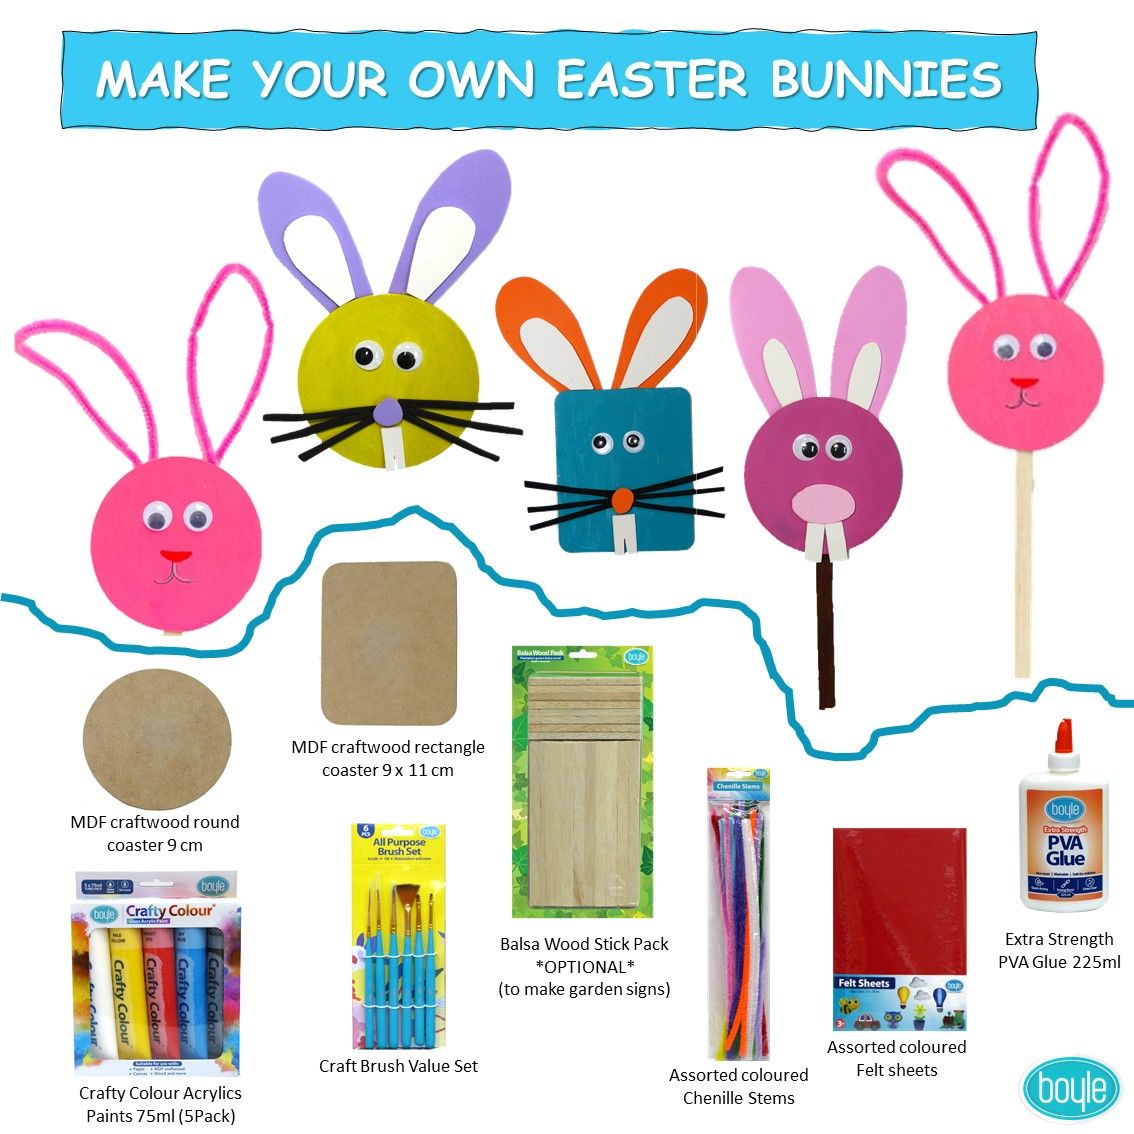 Be crafty this Easter and make your own